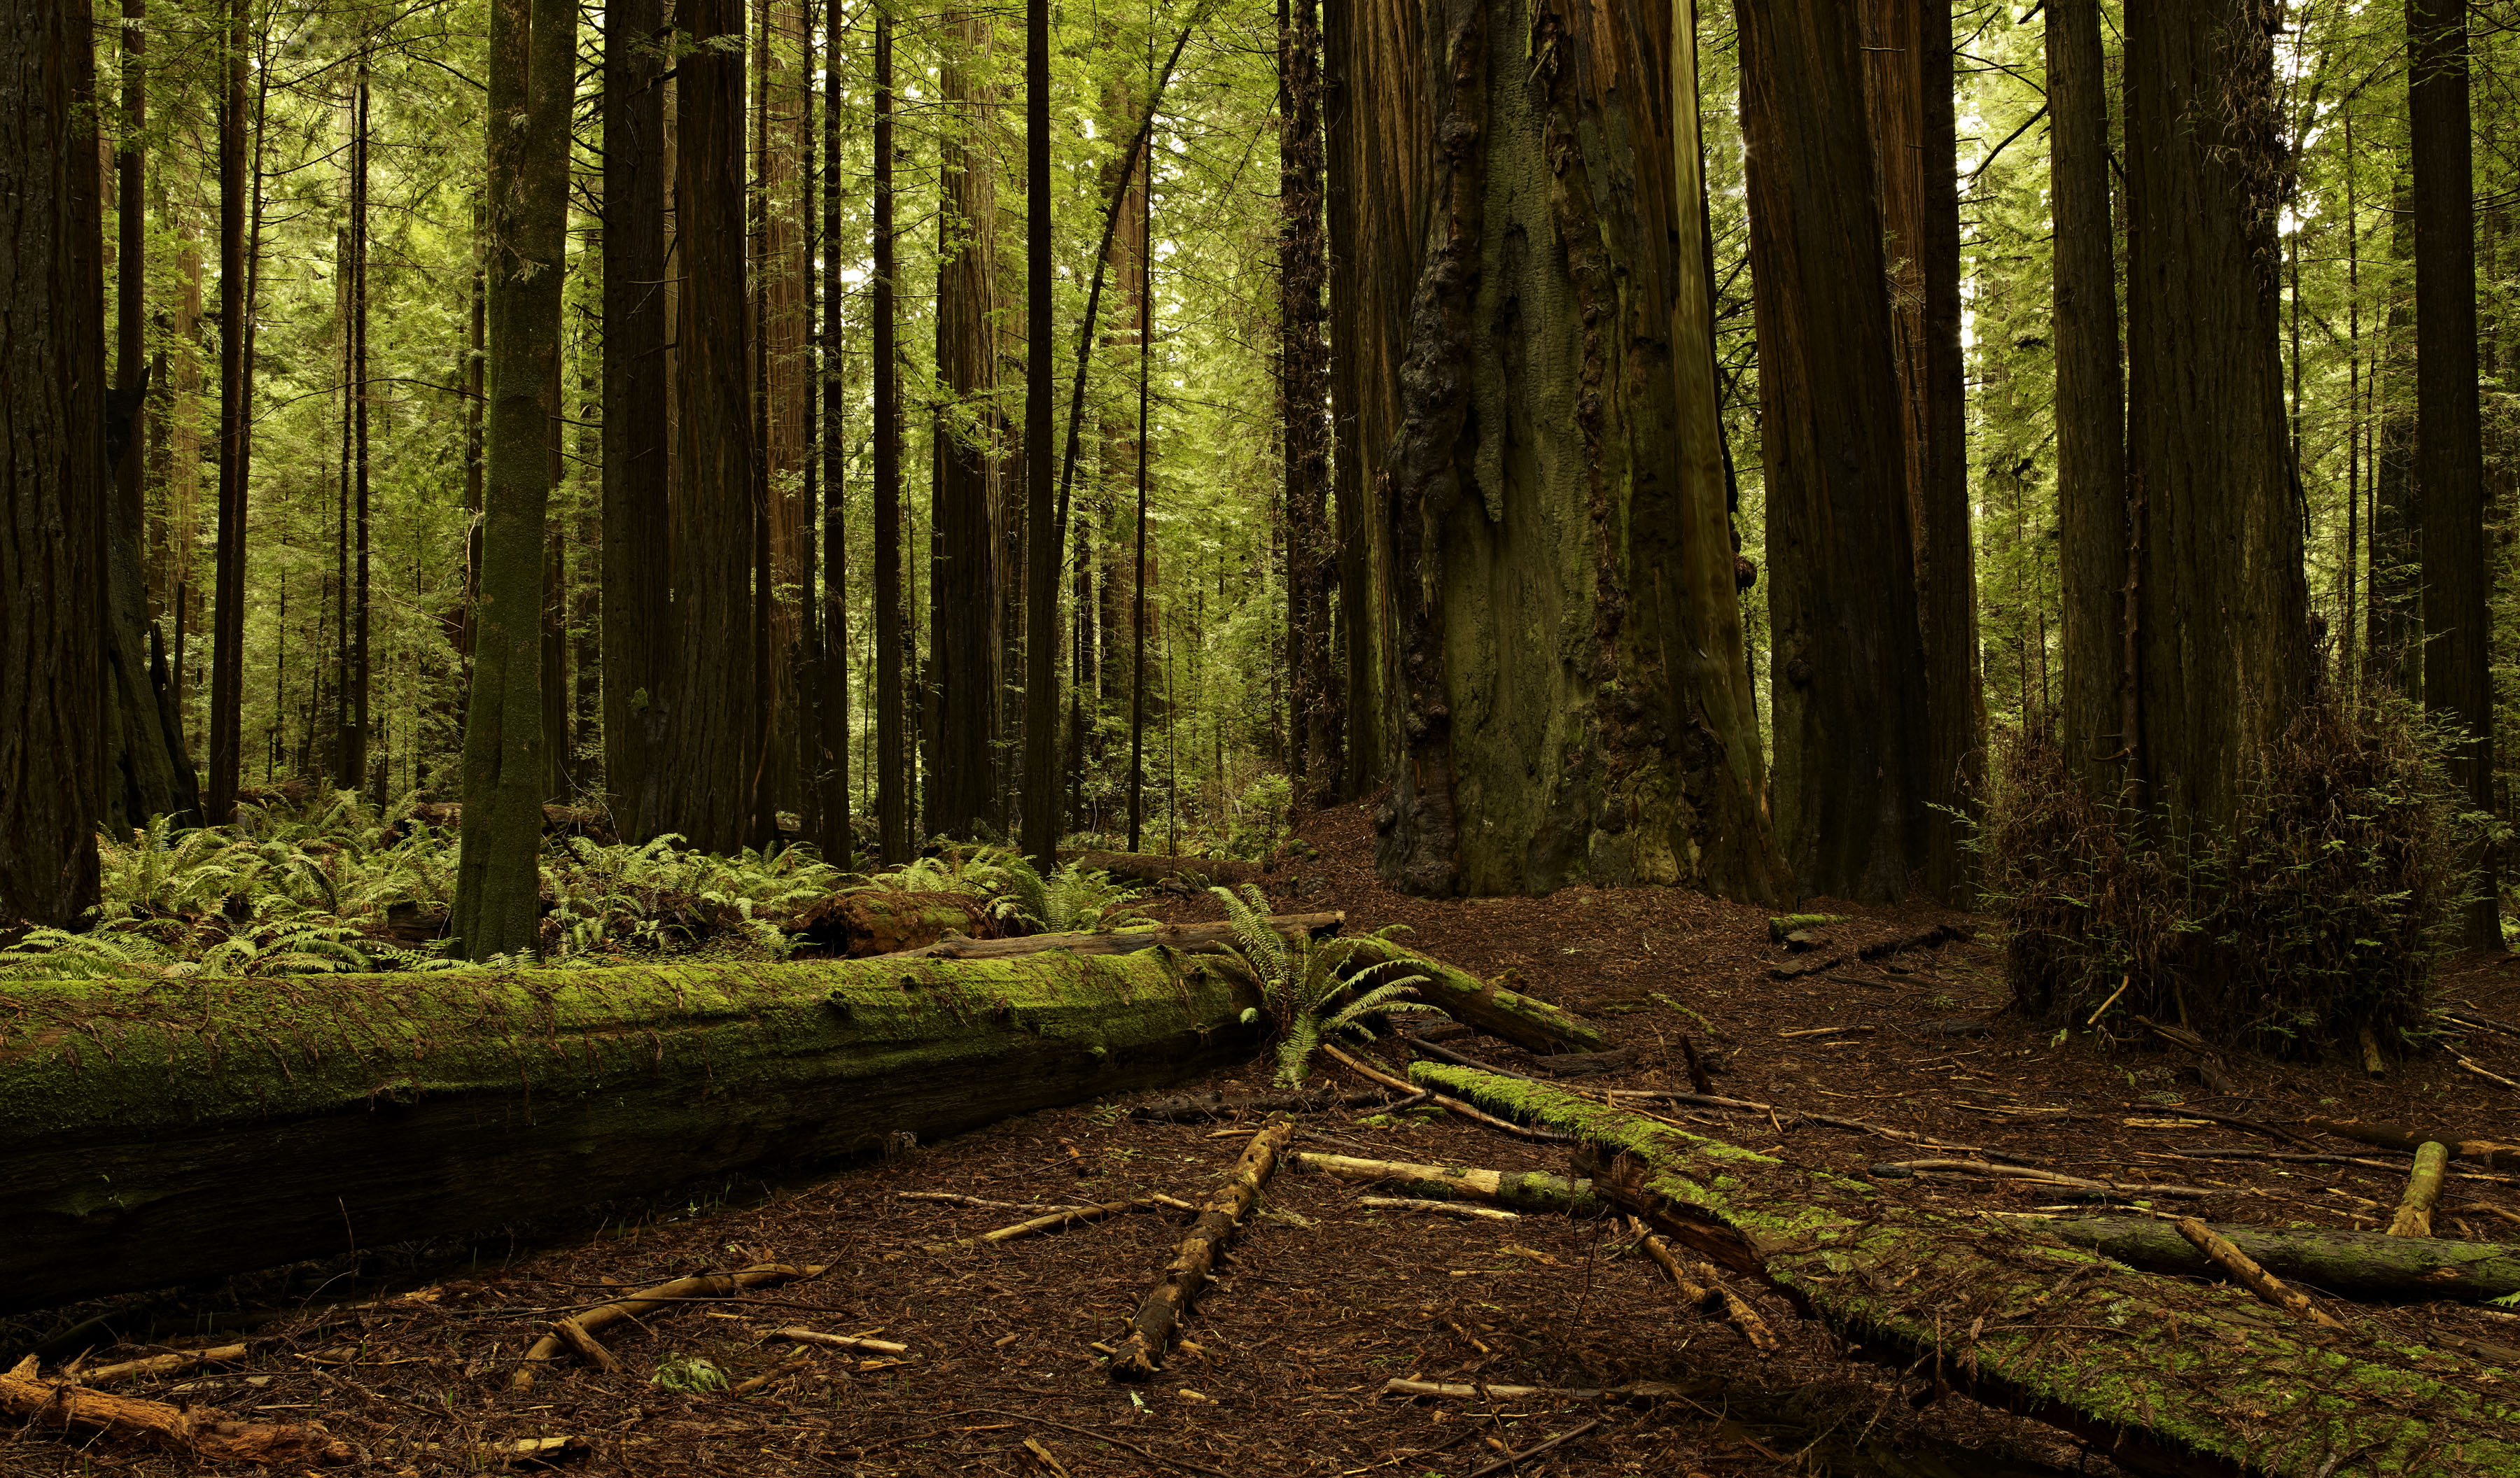 Redwood Forest, N. California, Click On The Image To See Larger, Then ...: kevinraber.com/2011/02/12/redwood-forest